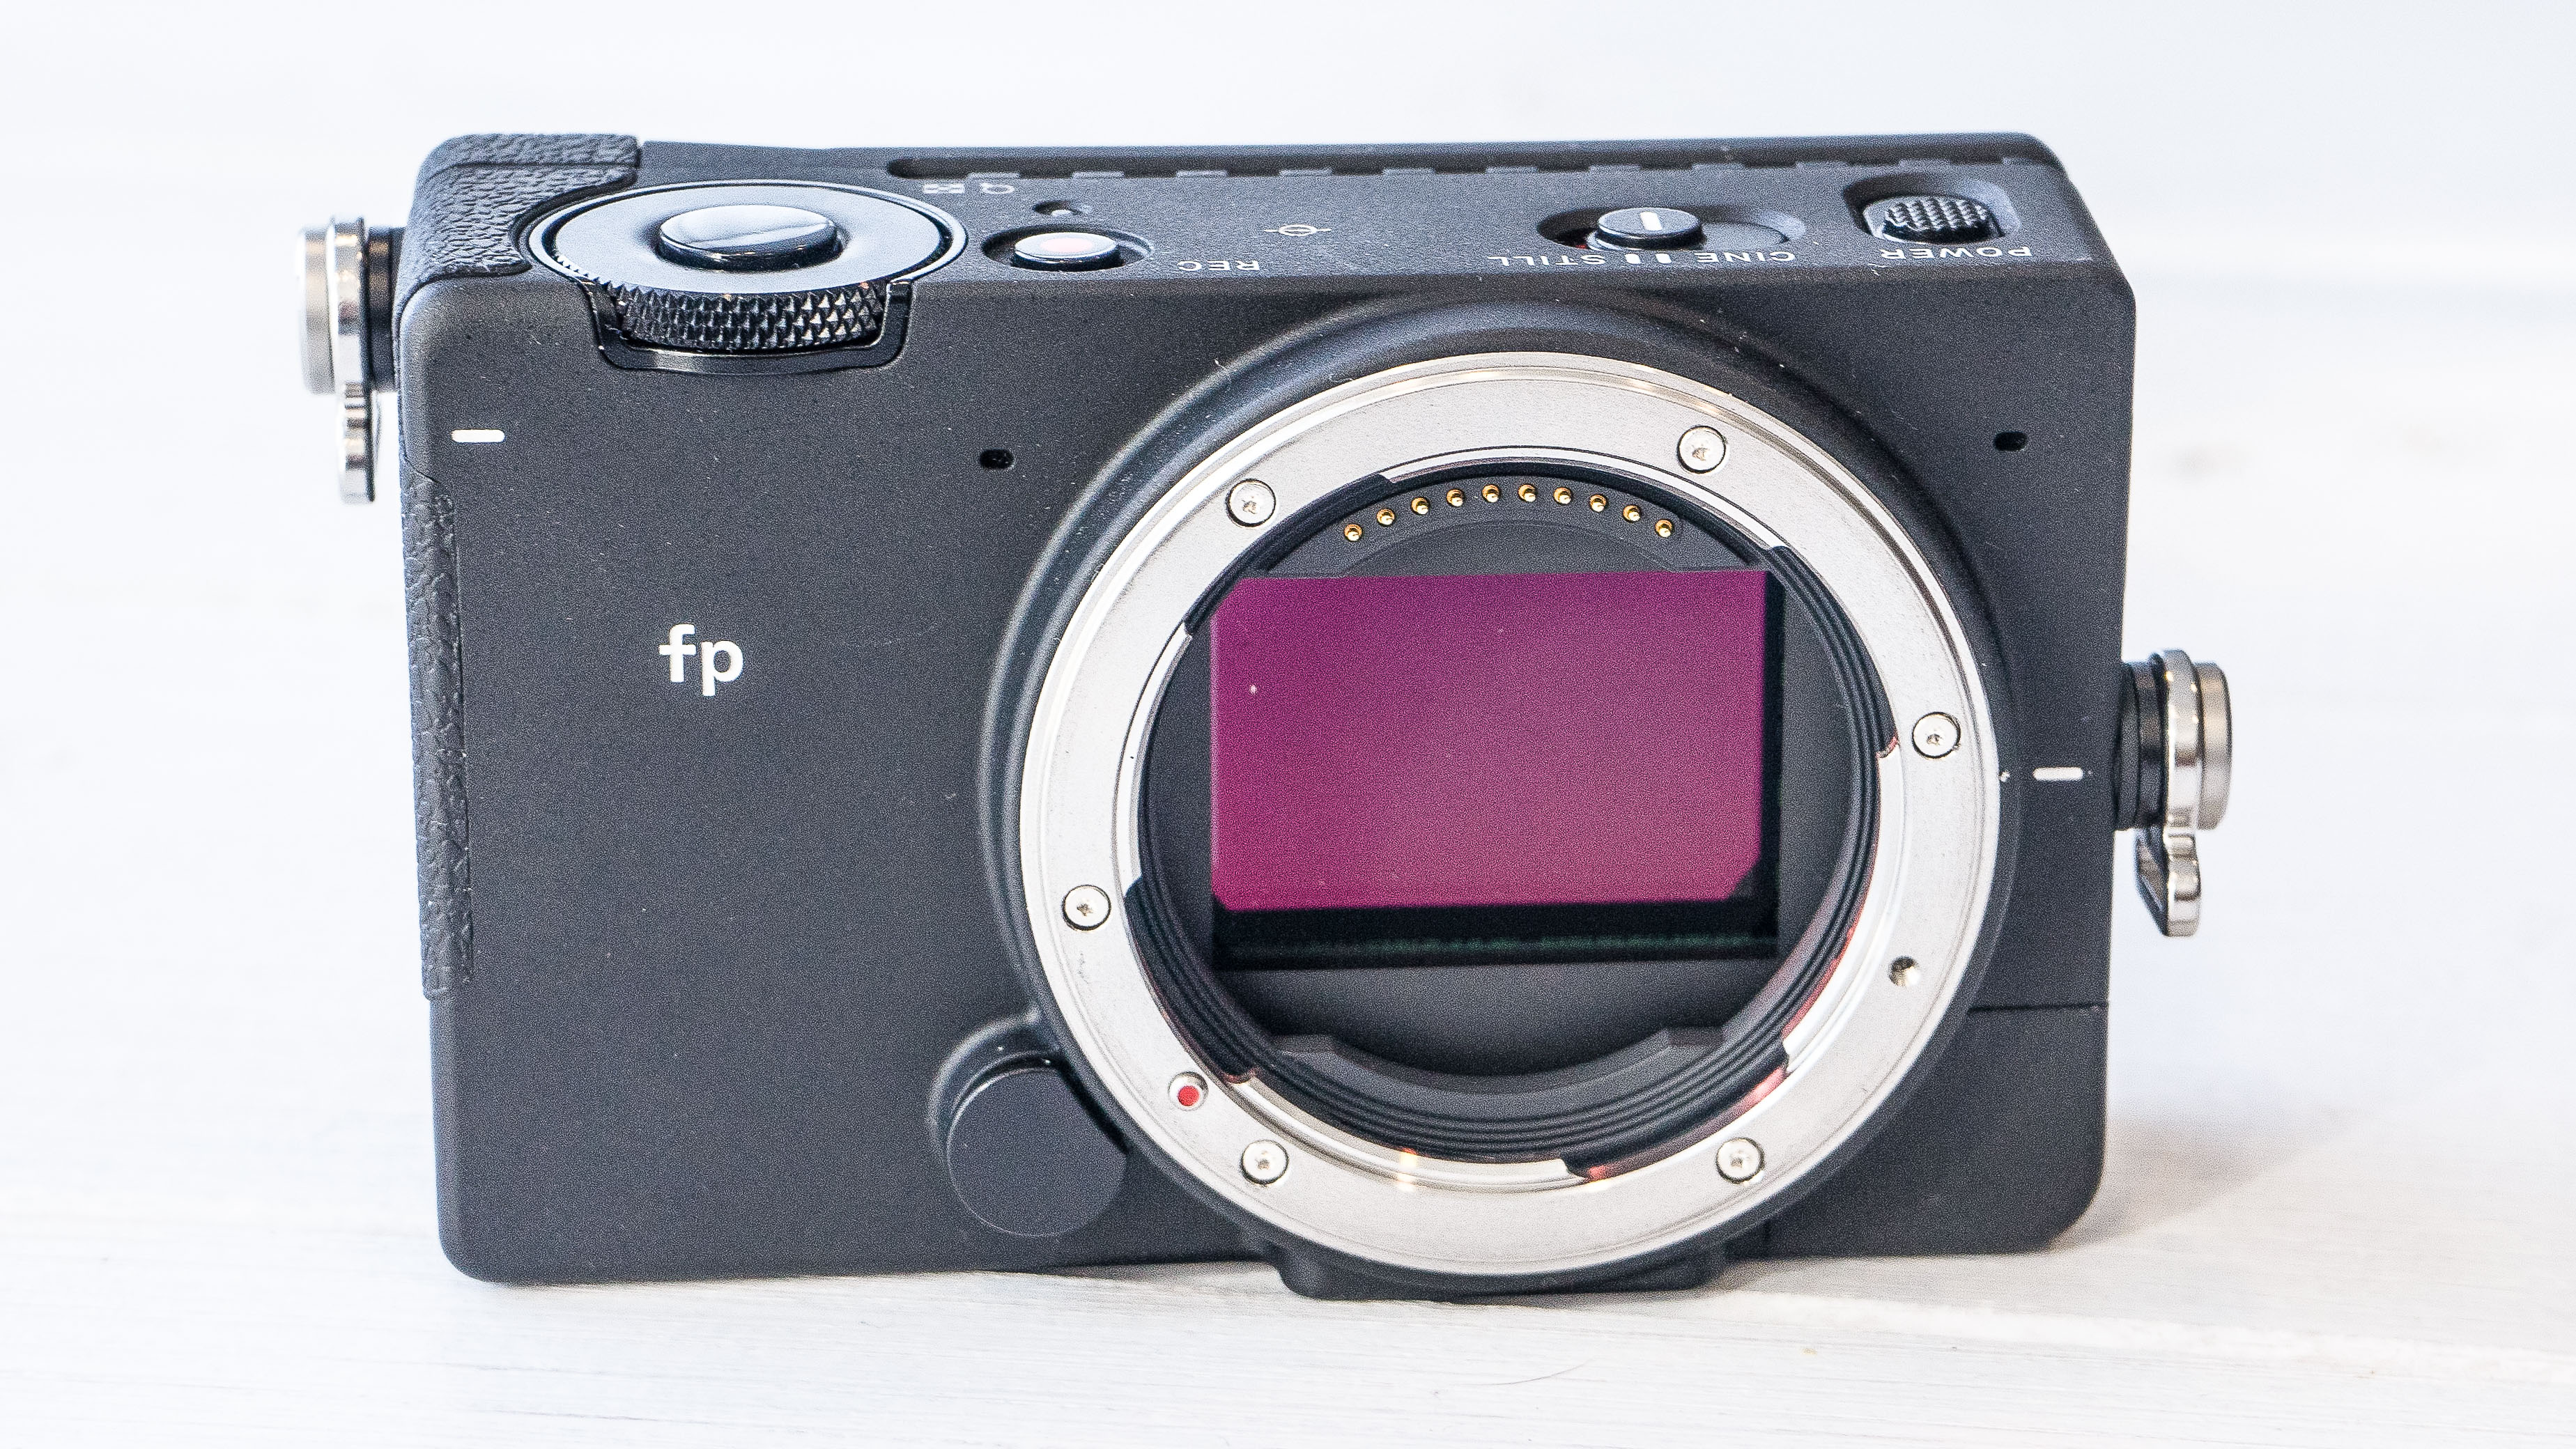 Sigma fp $2,000 price leaked, launching on 25 October? | Digital Camera World